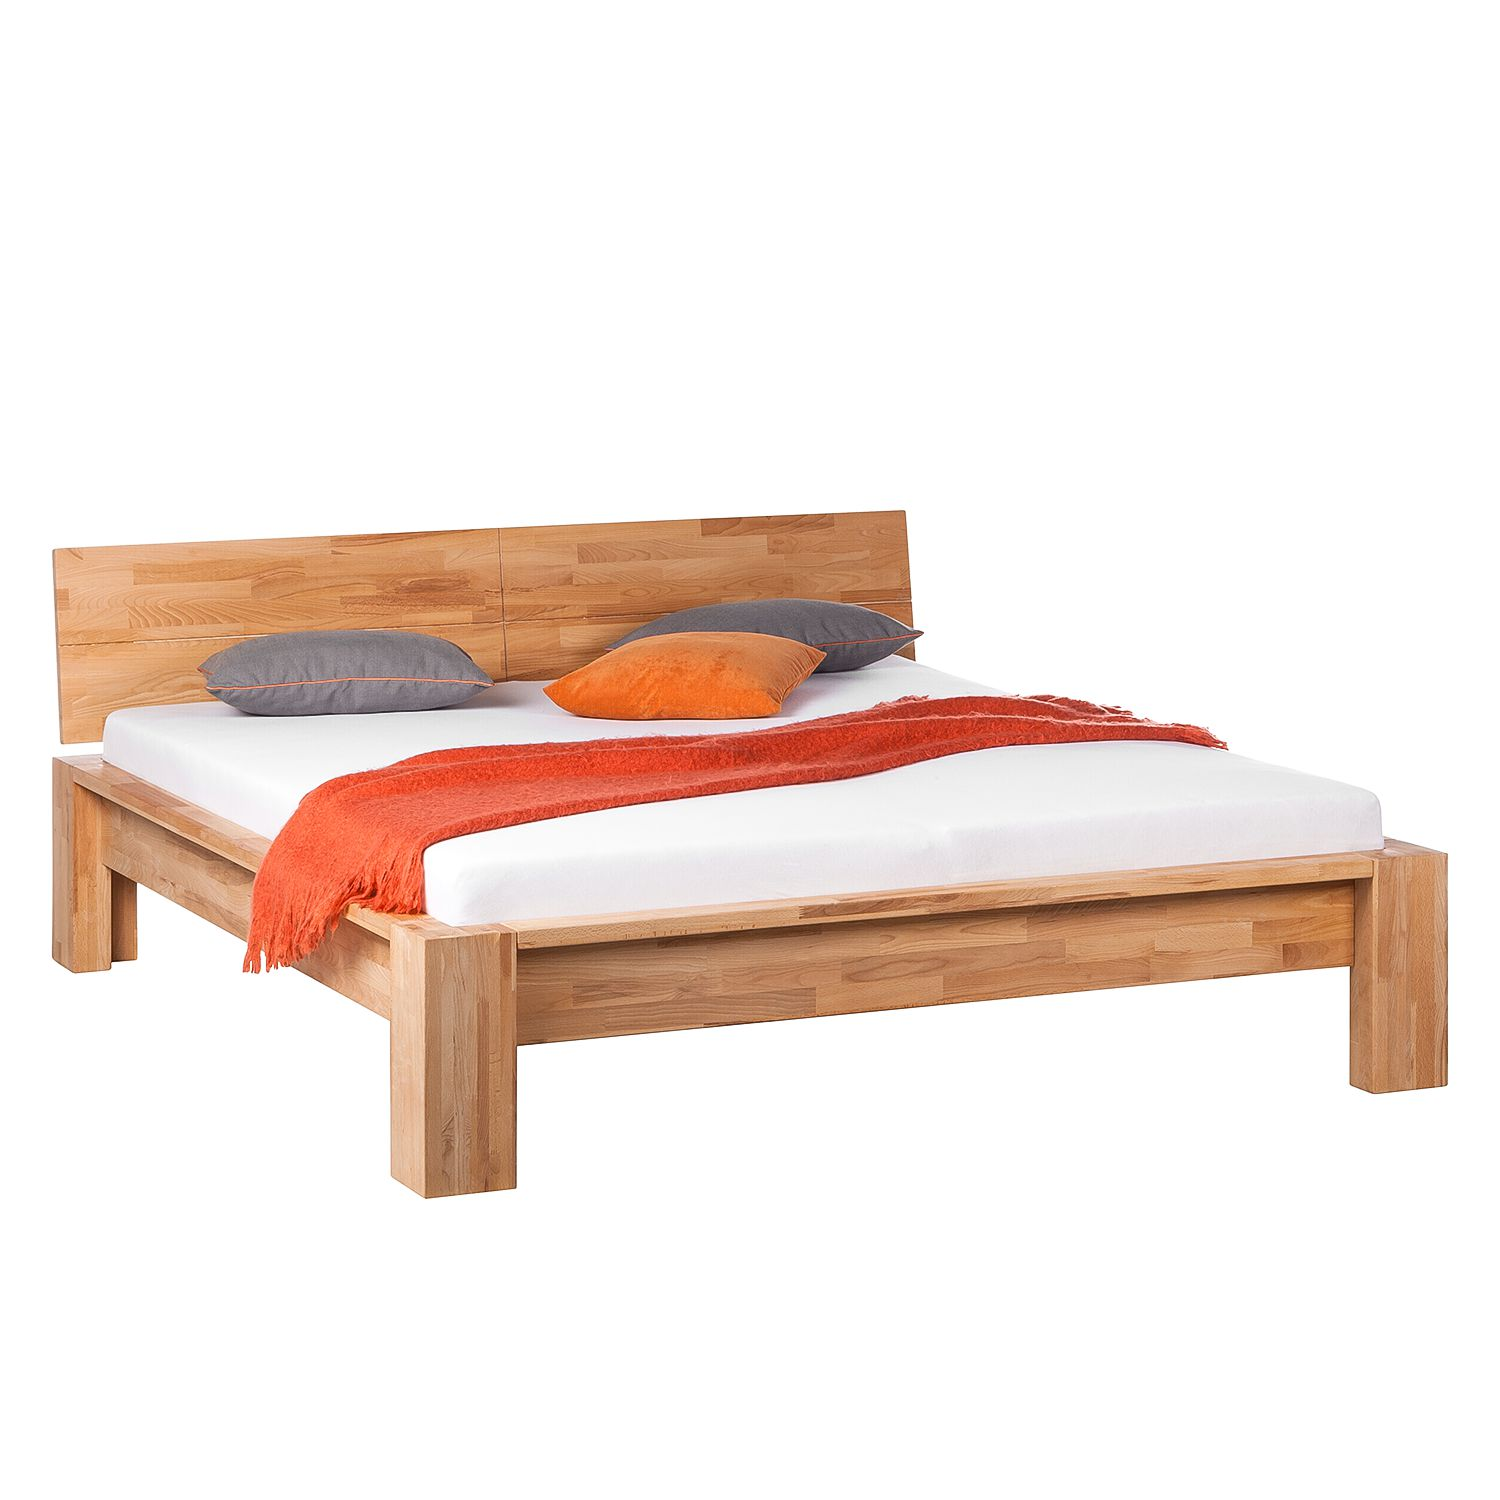 Bed ParosWood - massief hout - 140 x 200cm - Beuk, Ars Natura